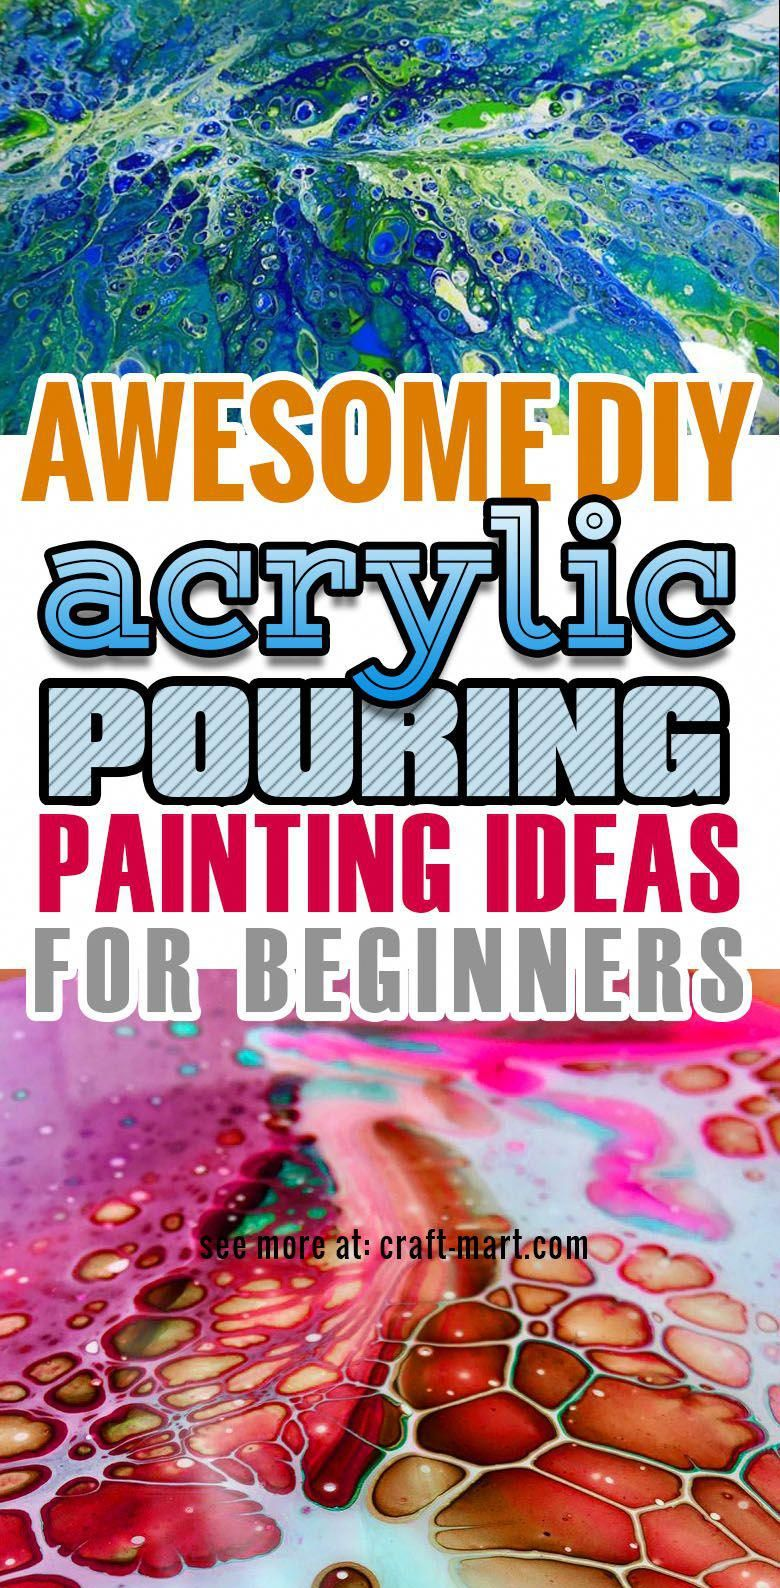 All you need to start creating your own wall art